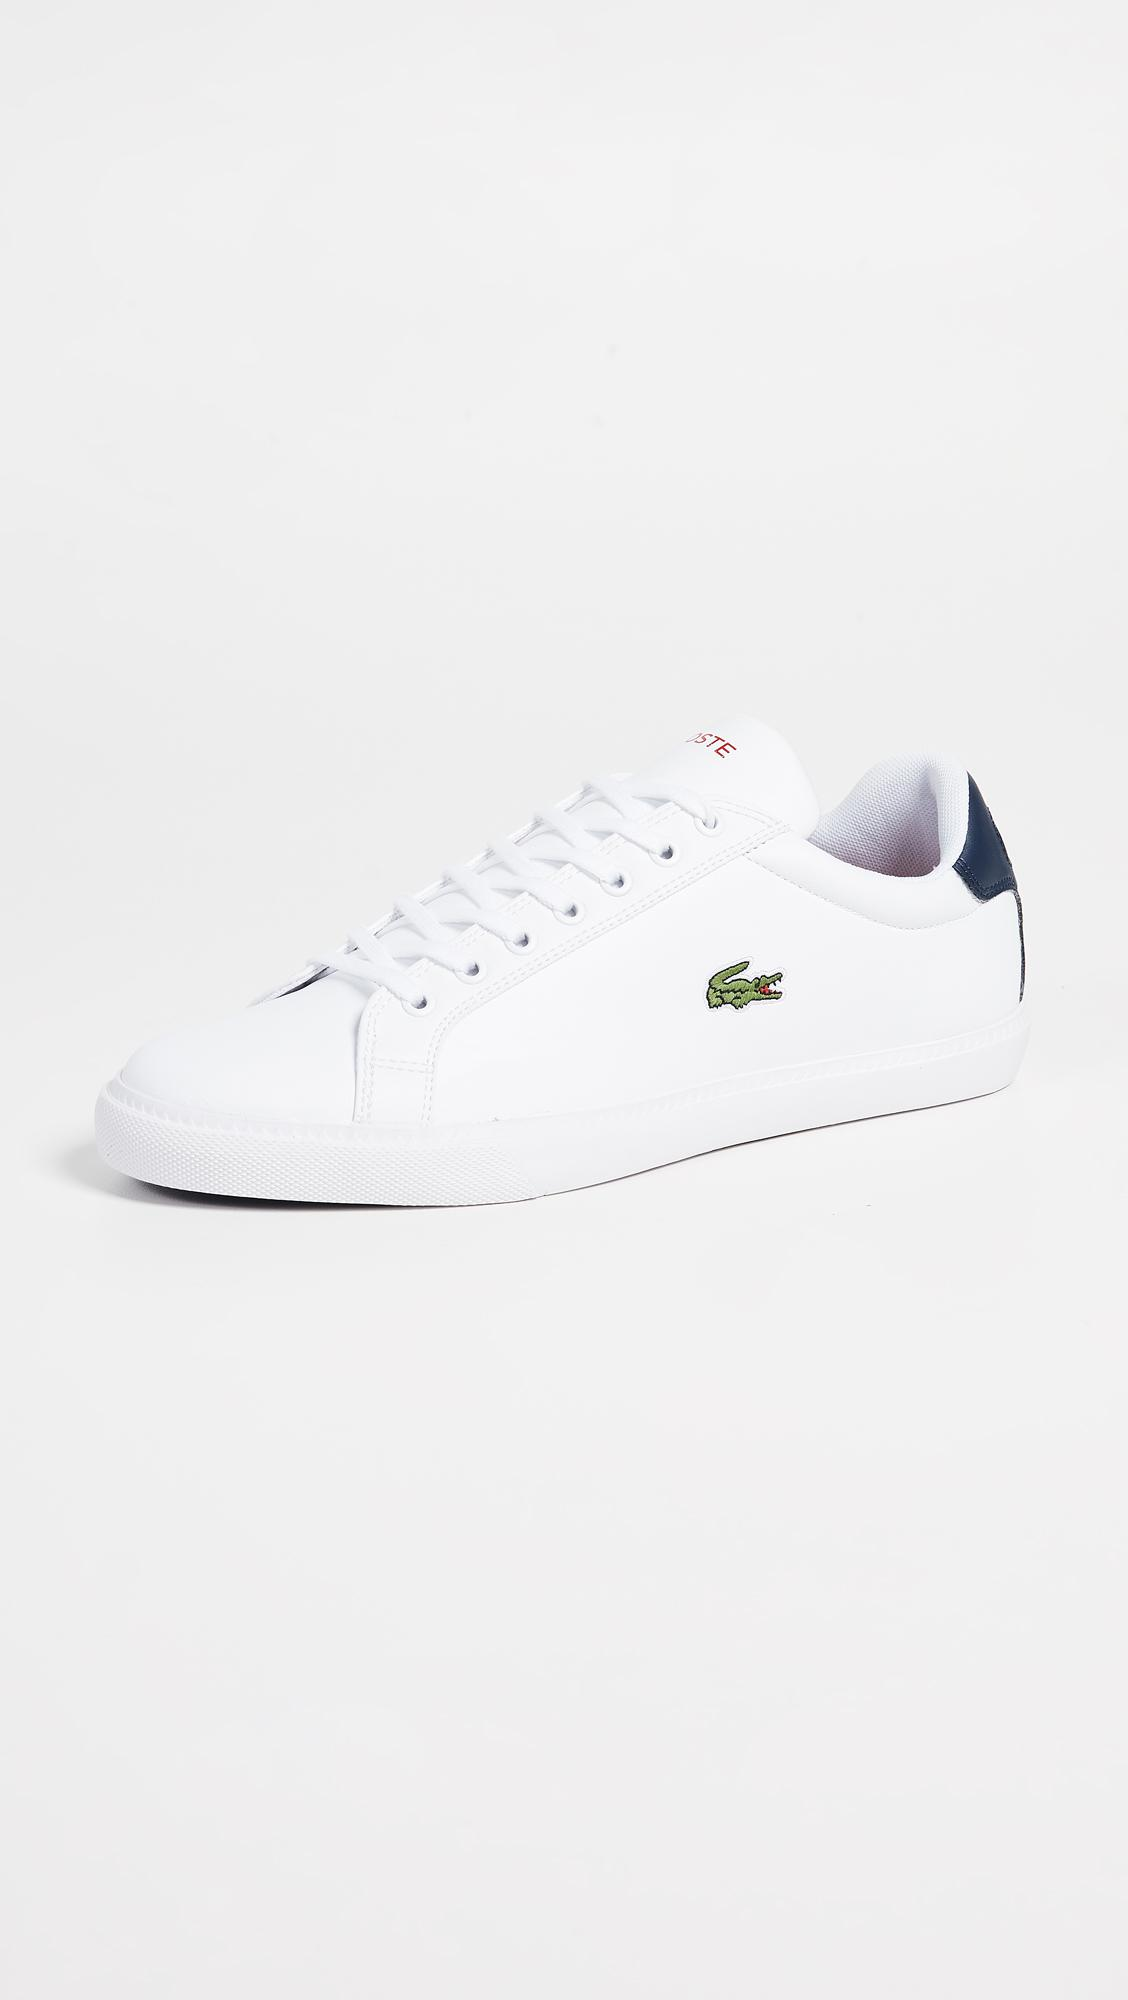 bc16d7dd40757 Lyst - Lacoste Grand Vulc Tennis Sneakers in White for Men